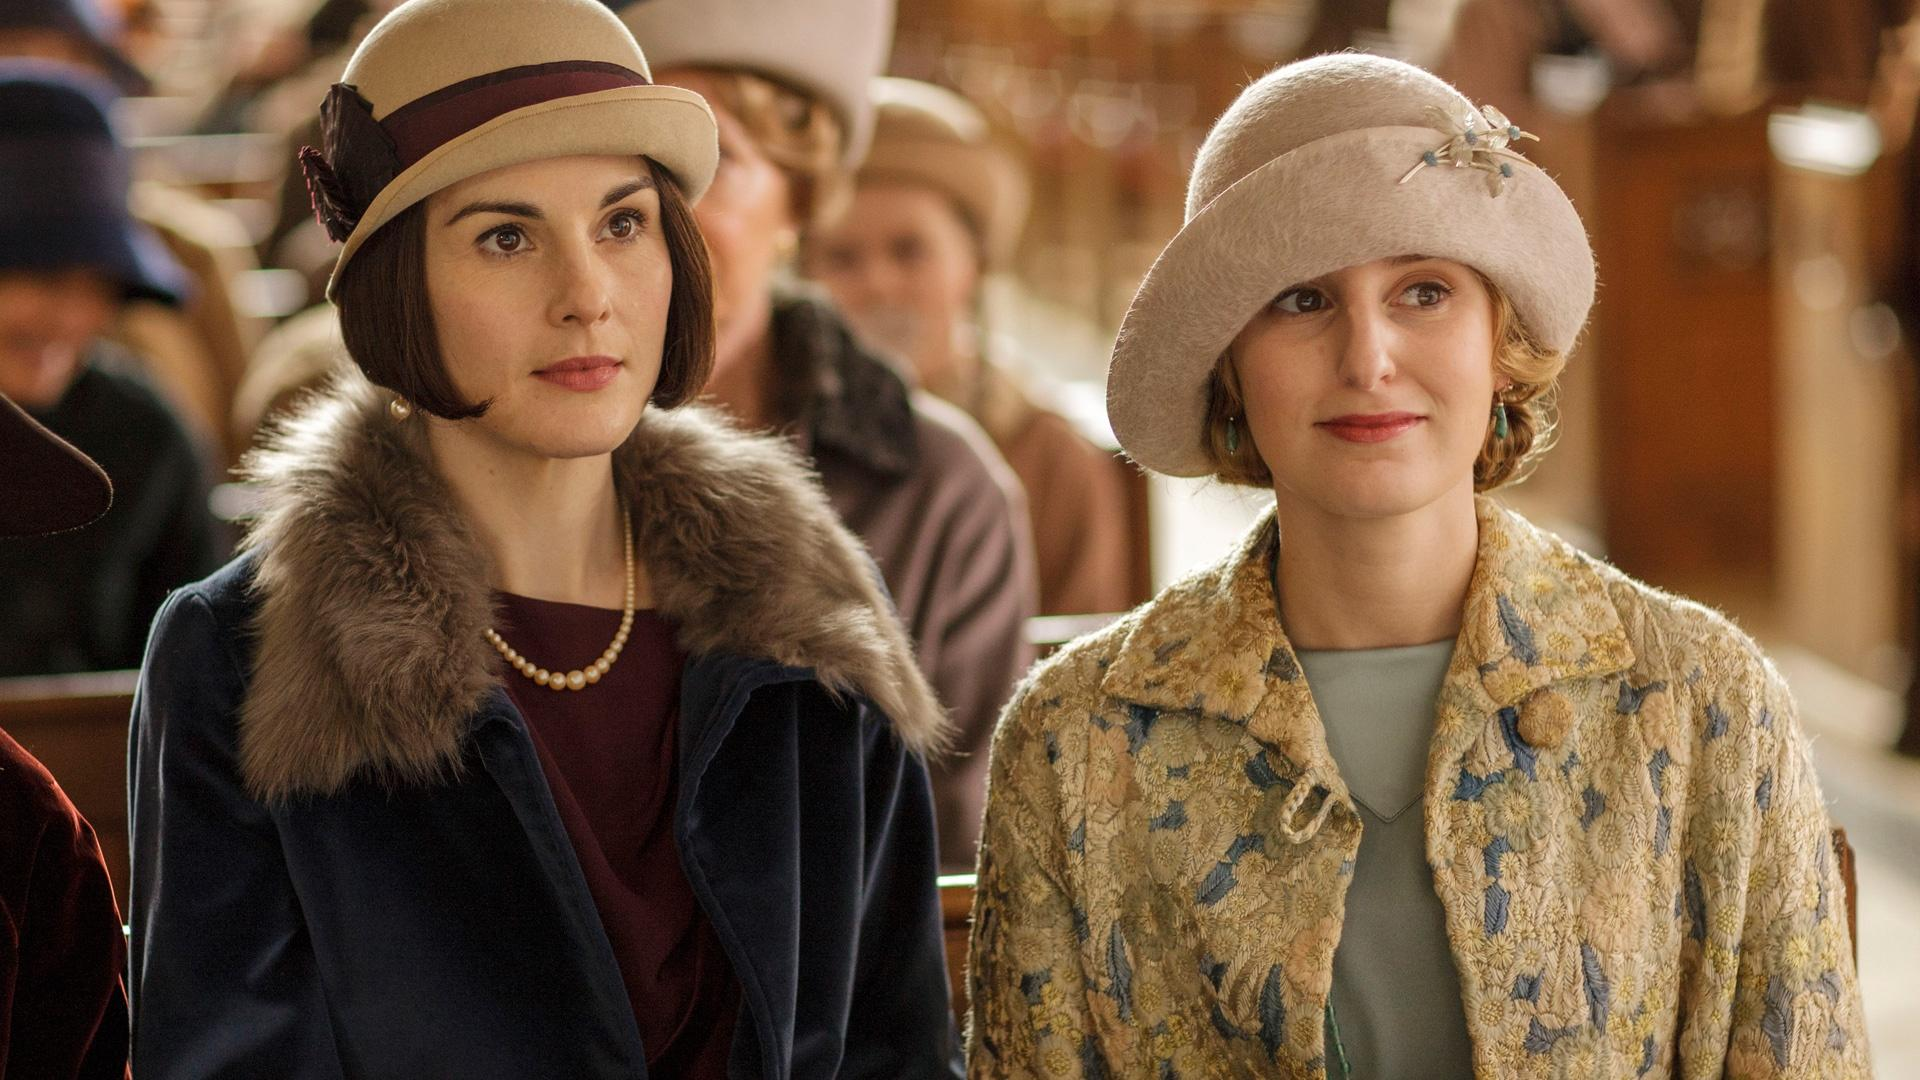 Downton Abbey on Masterpiece